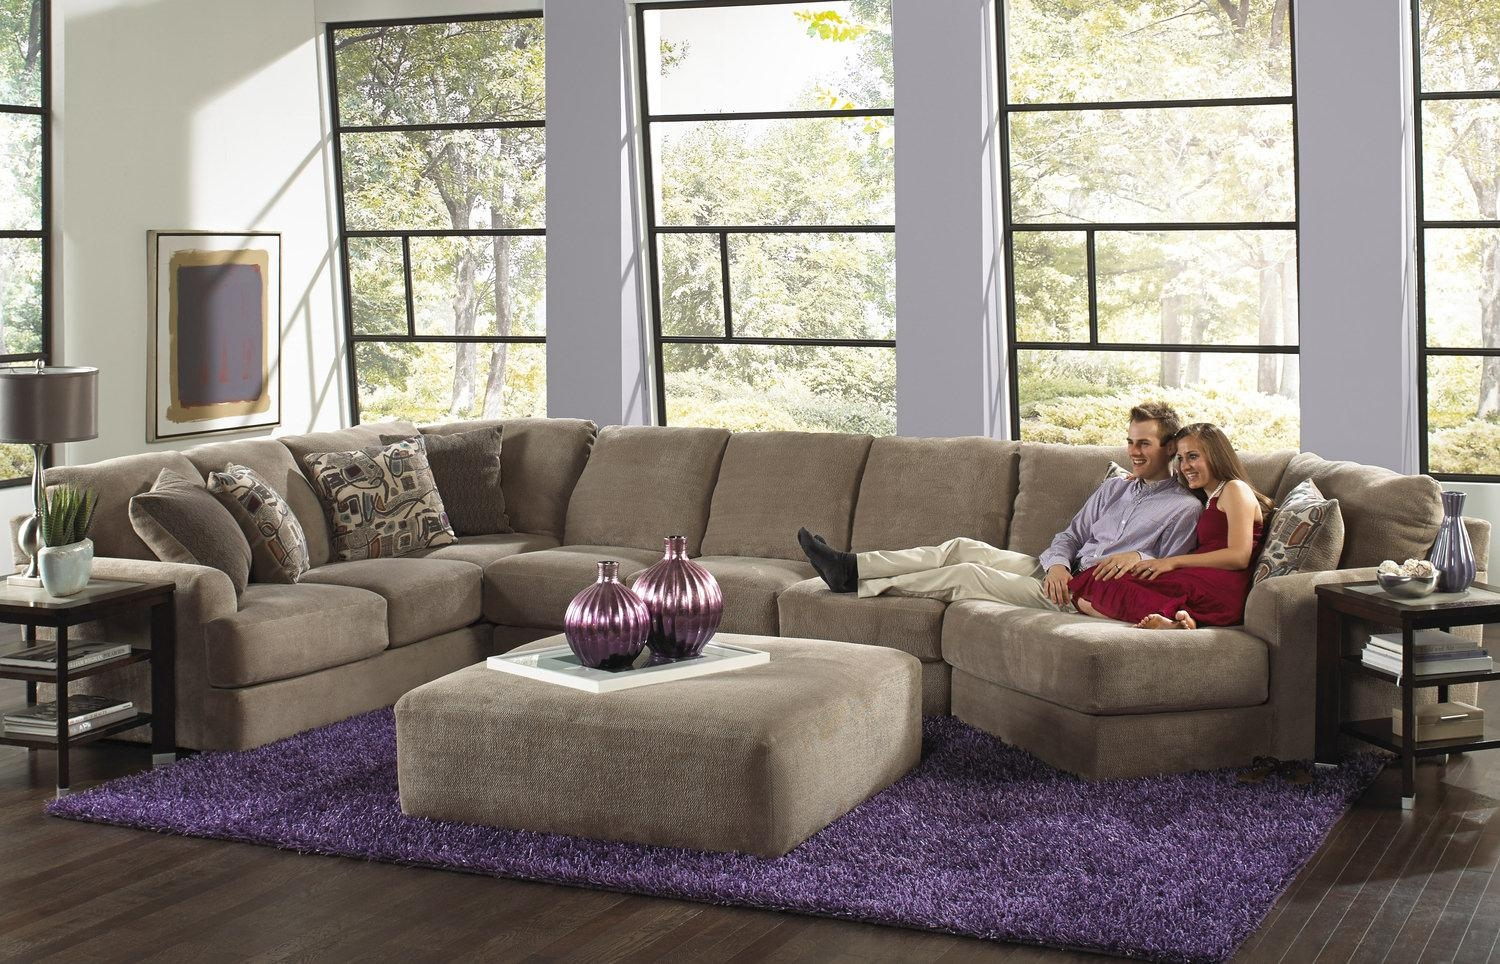 Regal 3 Piece Modular Sectional | Hom Furniture | Furniture Stores With Regard To Cuddler Sectional Sofa (Image 14 of 15)